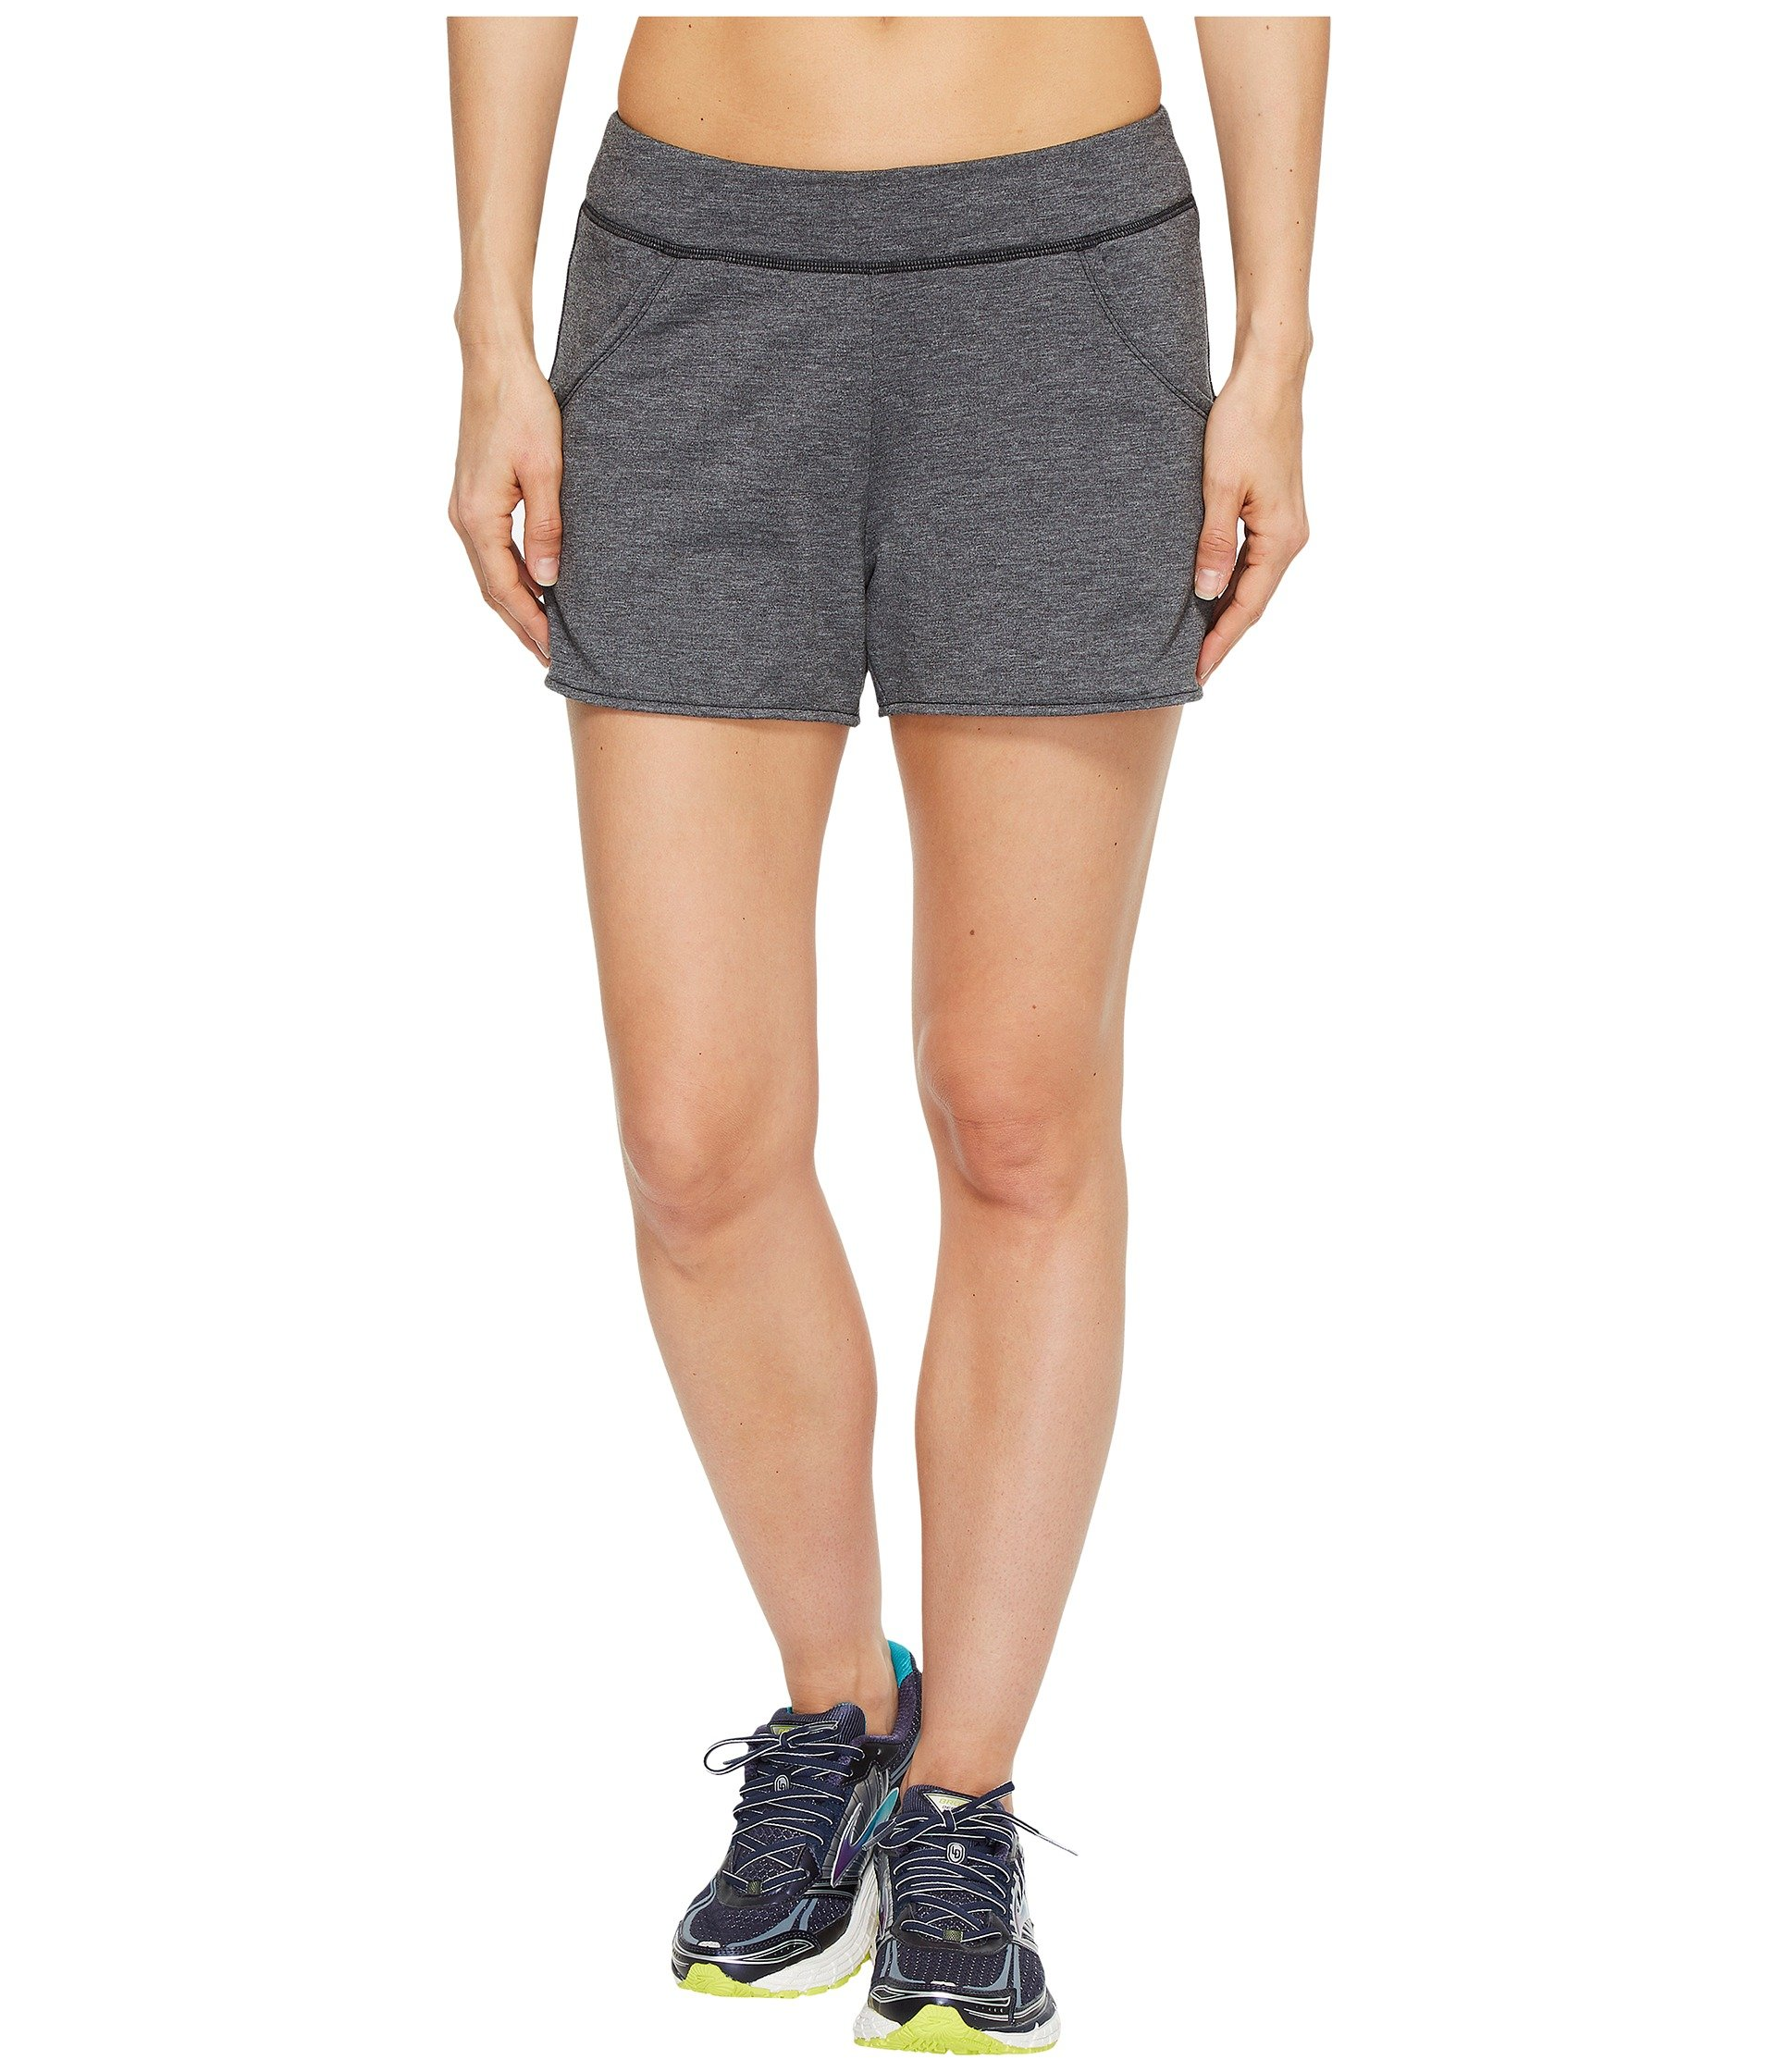 Smartwool Active Smartwool Shorts Reset Active Shorts Reset Charcoal Reset Smartwool Smartwool Charcoal Shorts Active Shorts Reset Active Charcoal HAS7Swqx